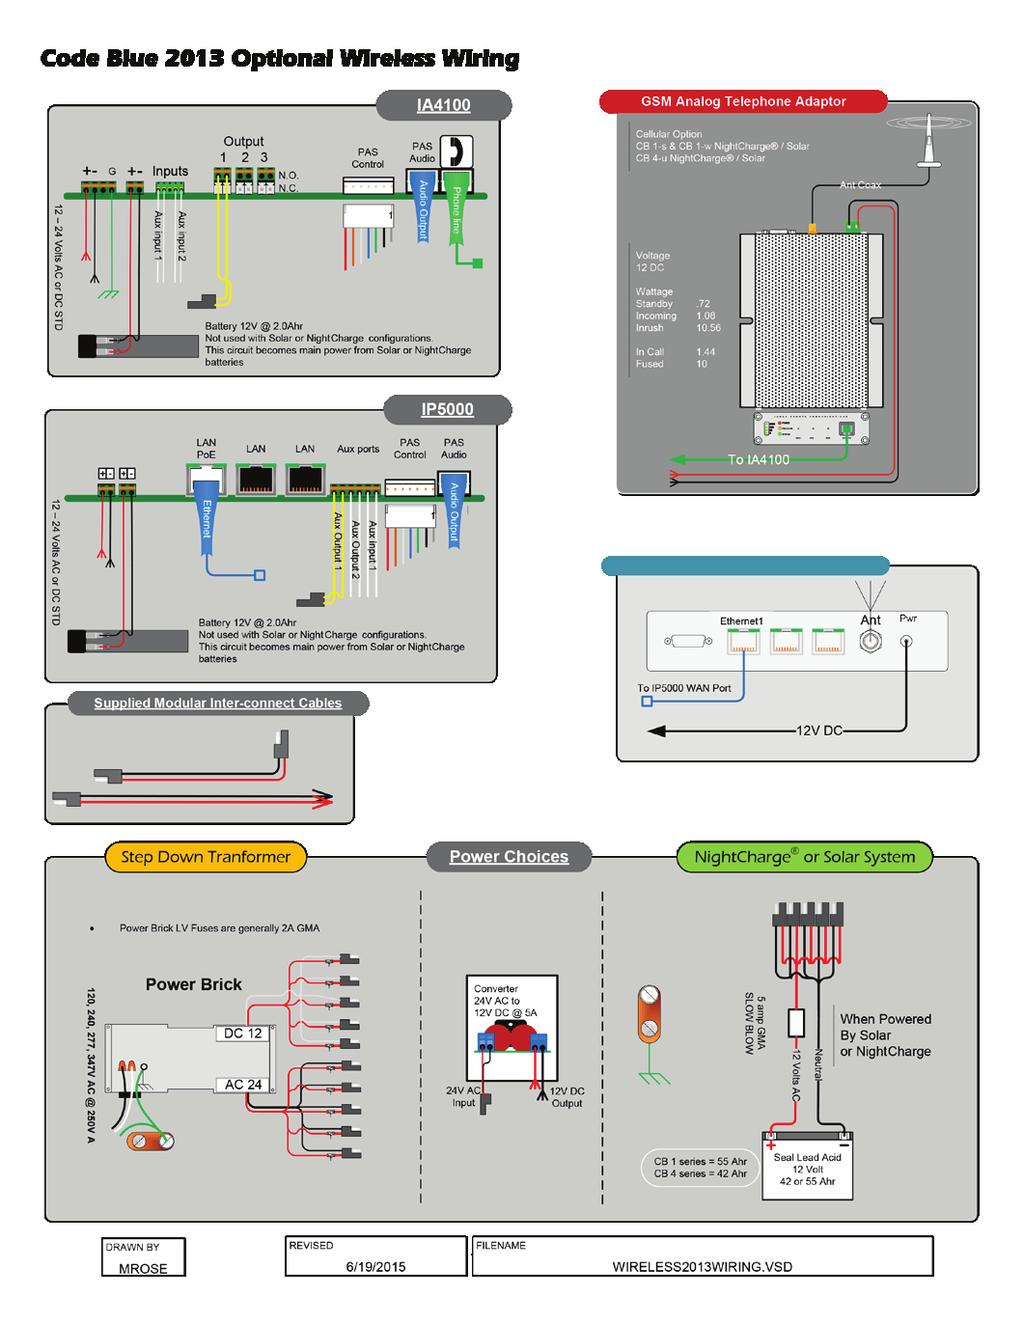 Cb 1 Series Administrator Guide Installation Configuration 120 240 Volt Wiring Diagram 12 Lines 40 Gsm Wireless W Ireless Not Supplied By Code Blue Product